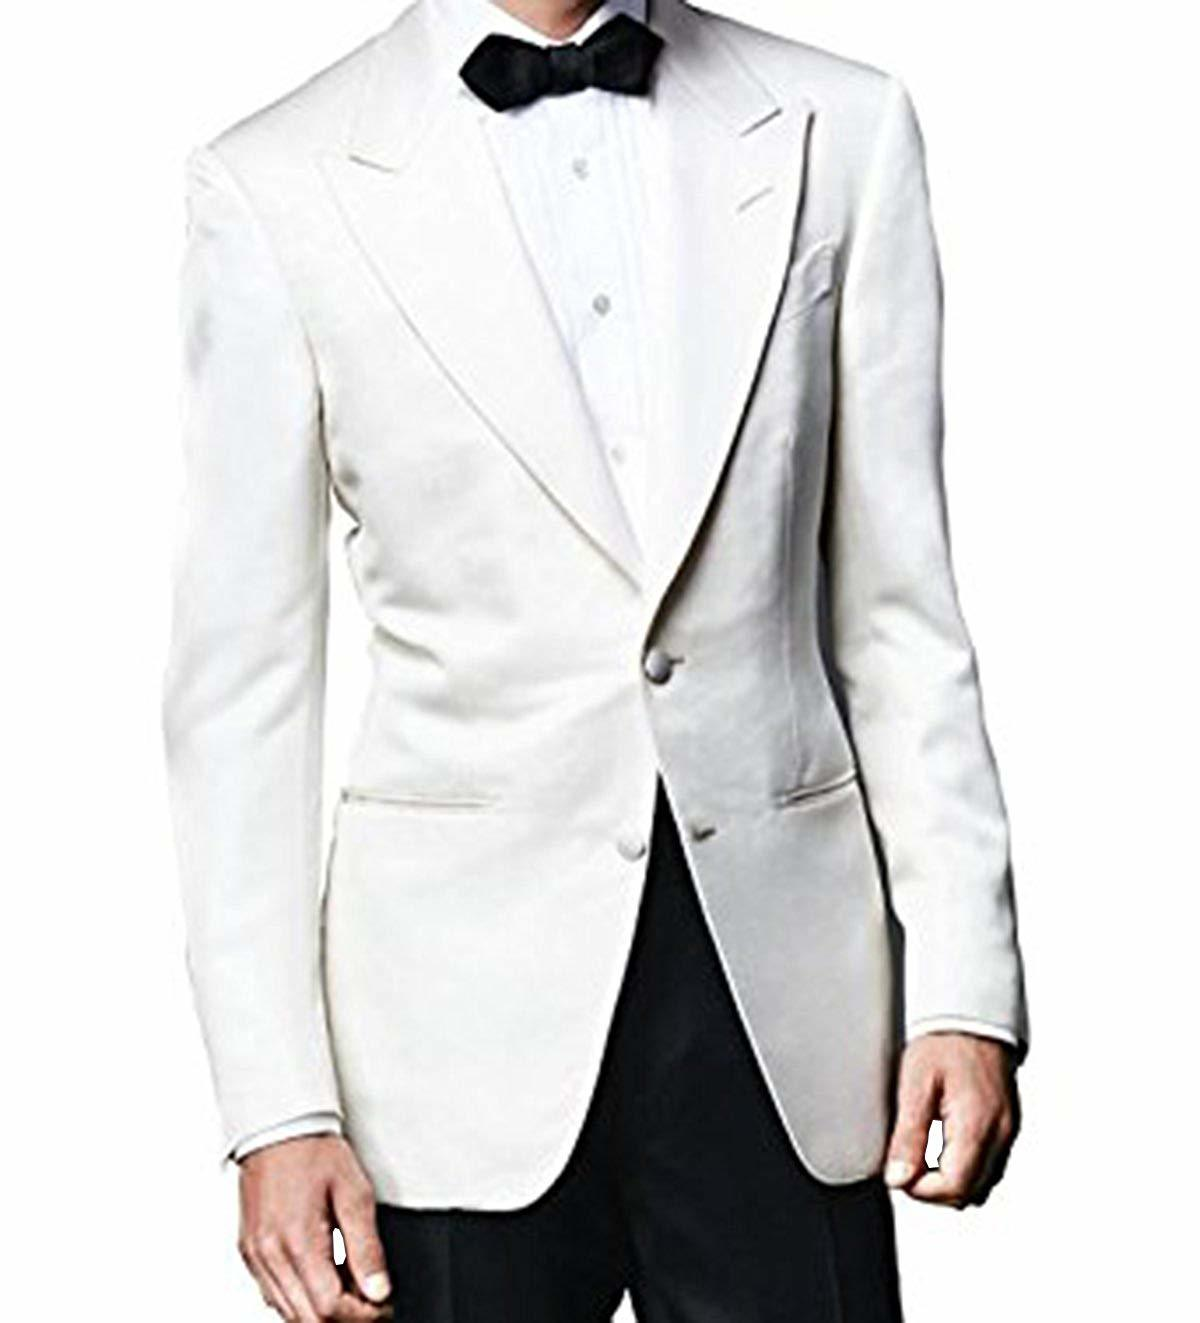 Lp facon james bond spectre ivory white tuxedo with black pants